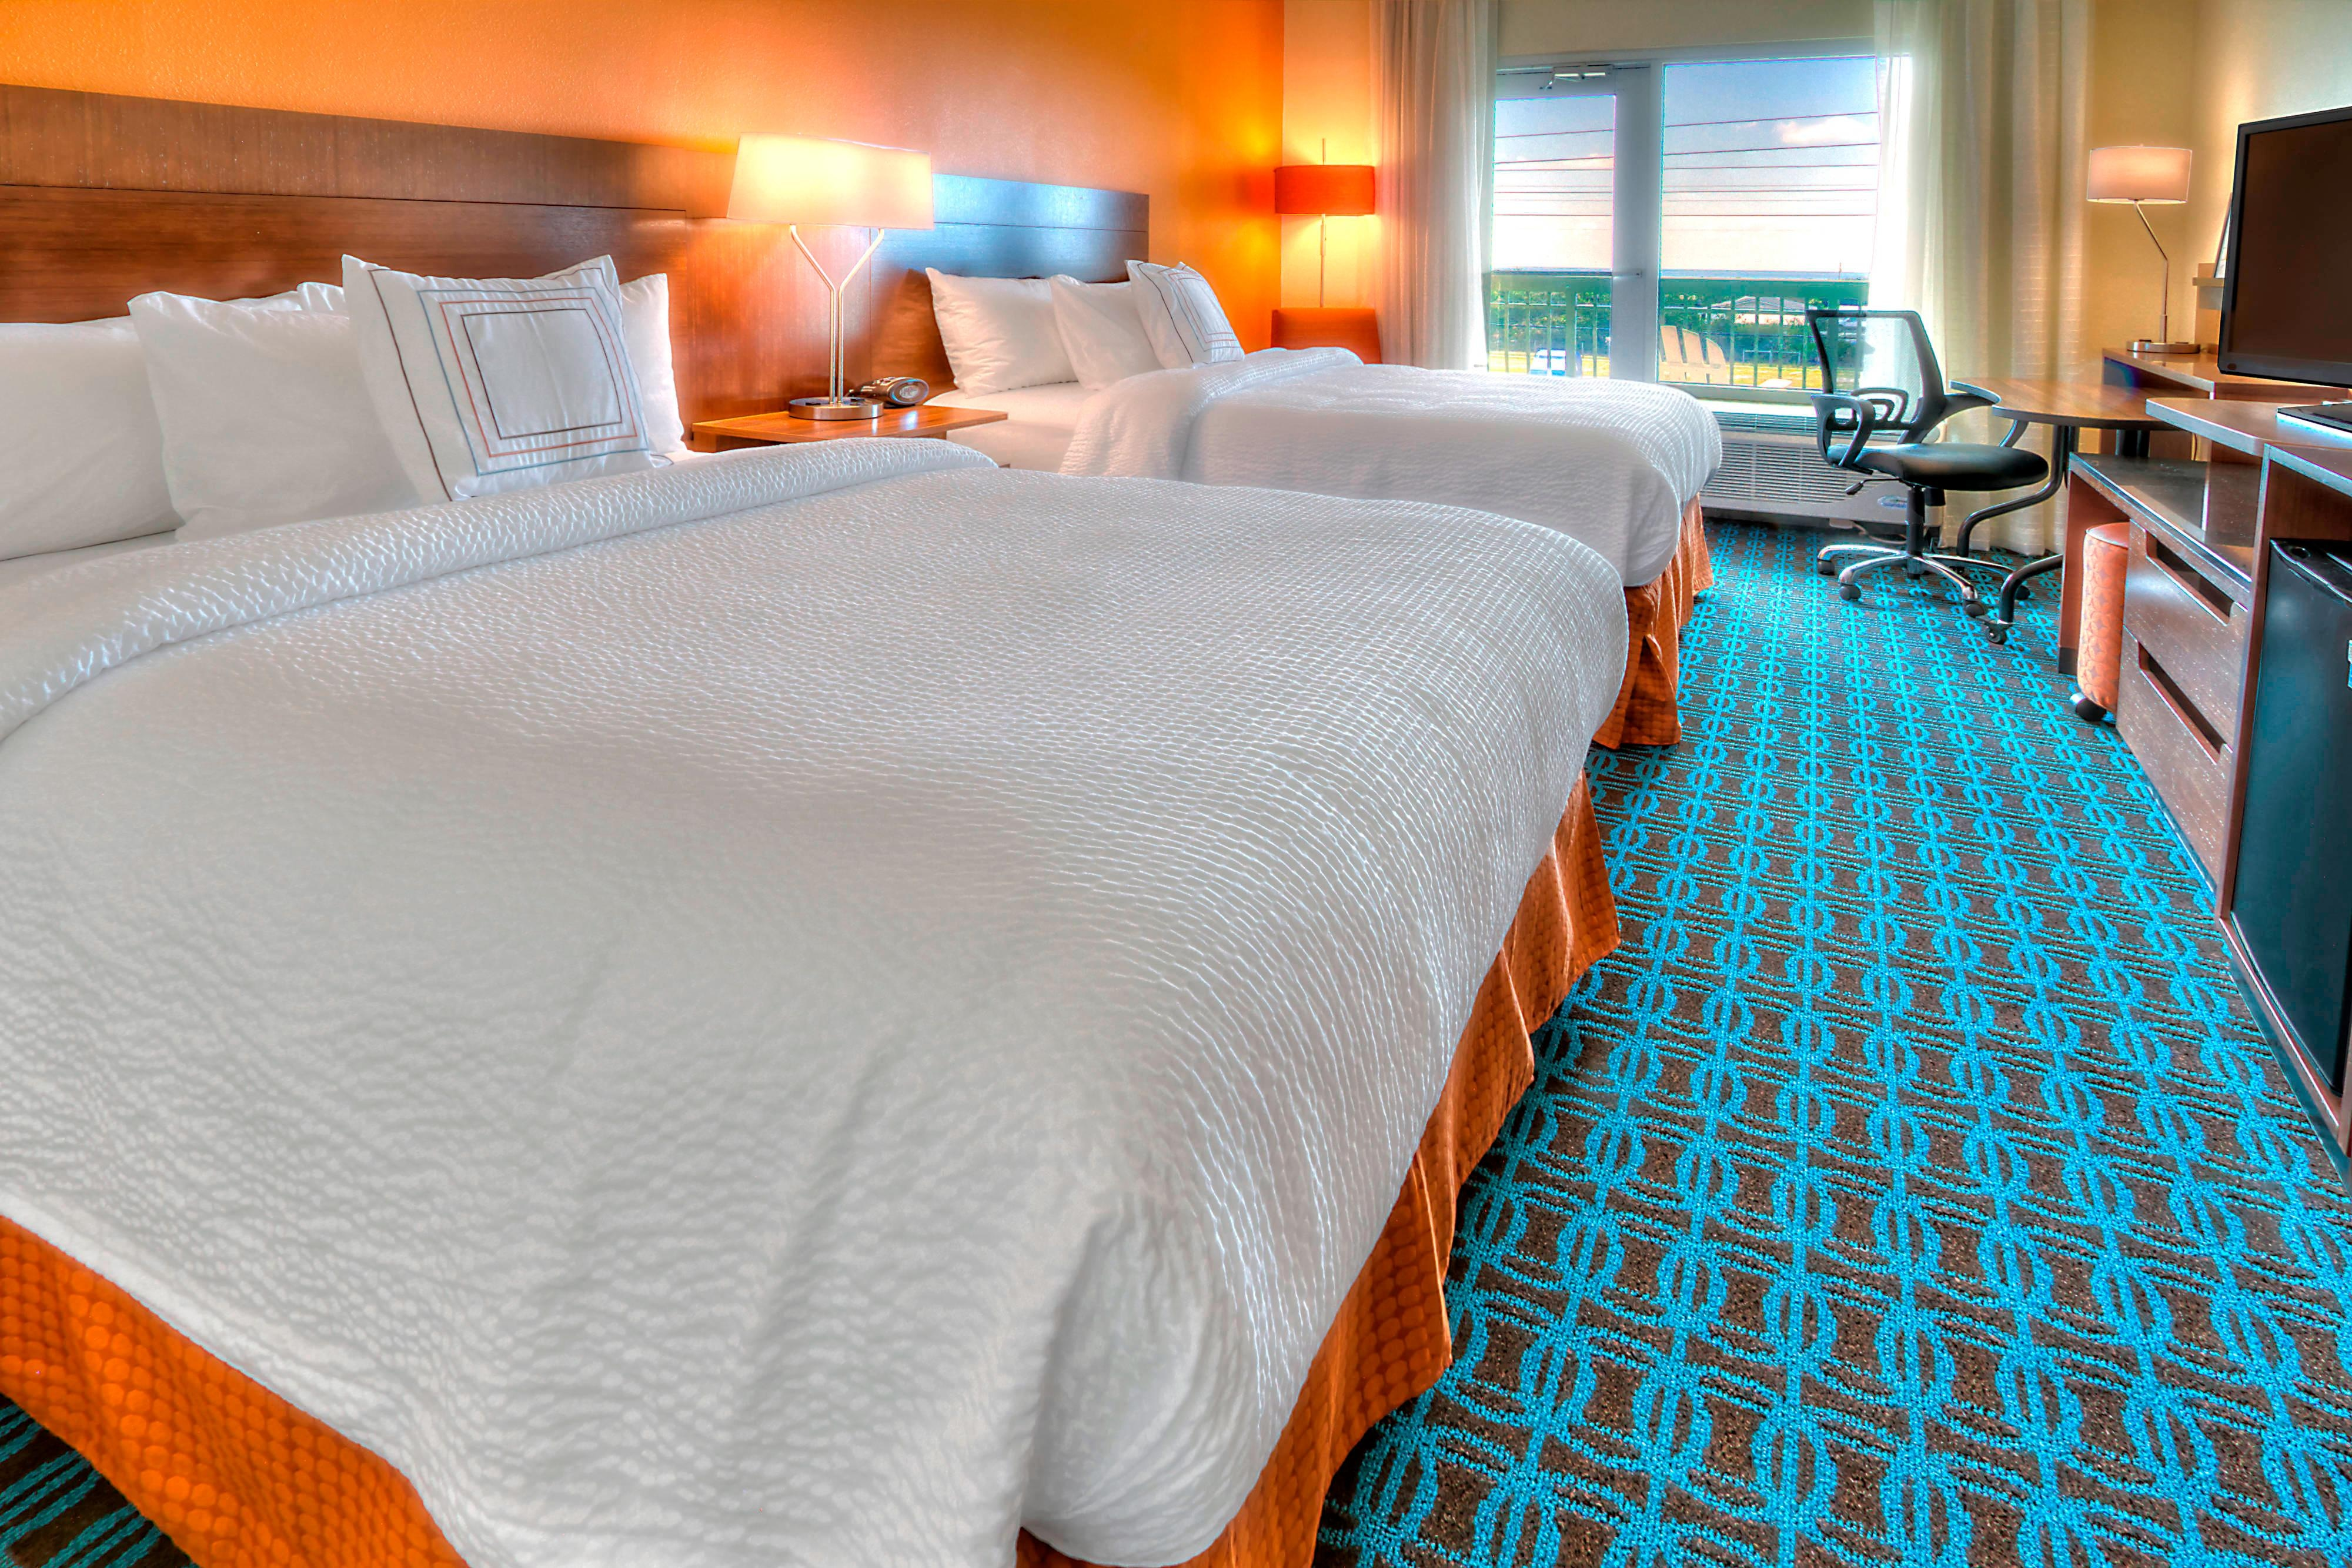 Hotel Rooms in Destin Florida